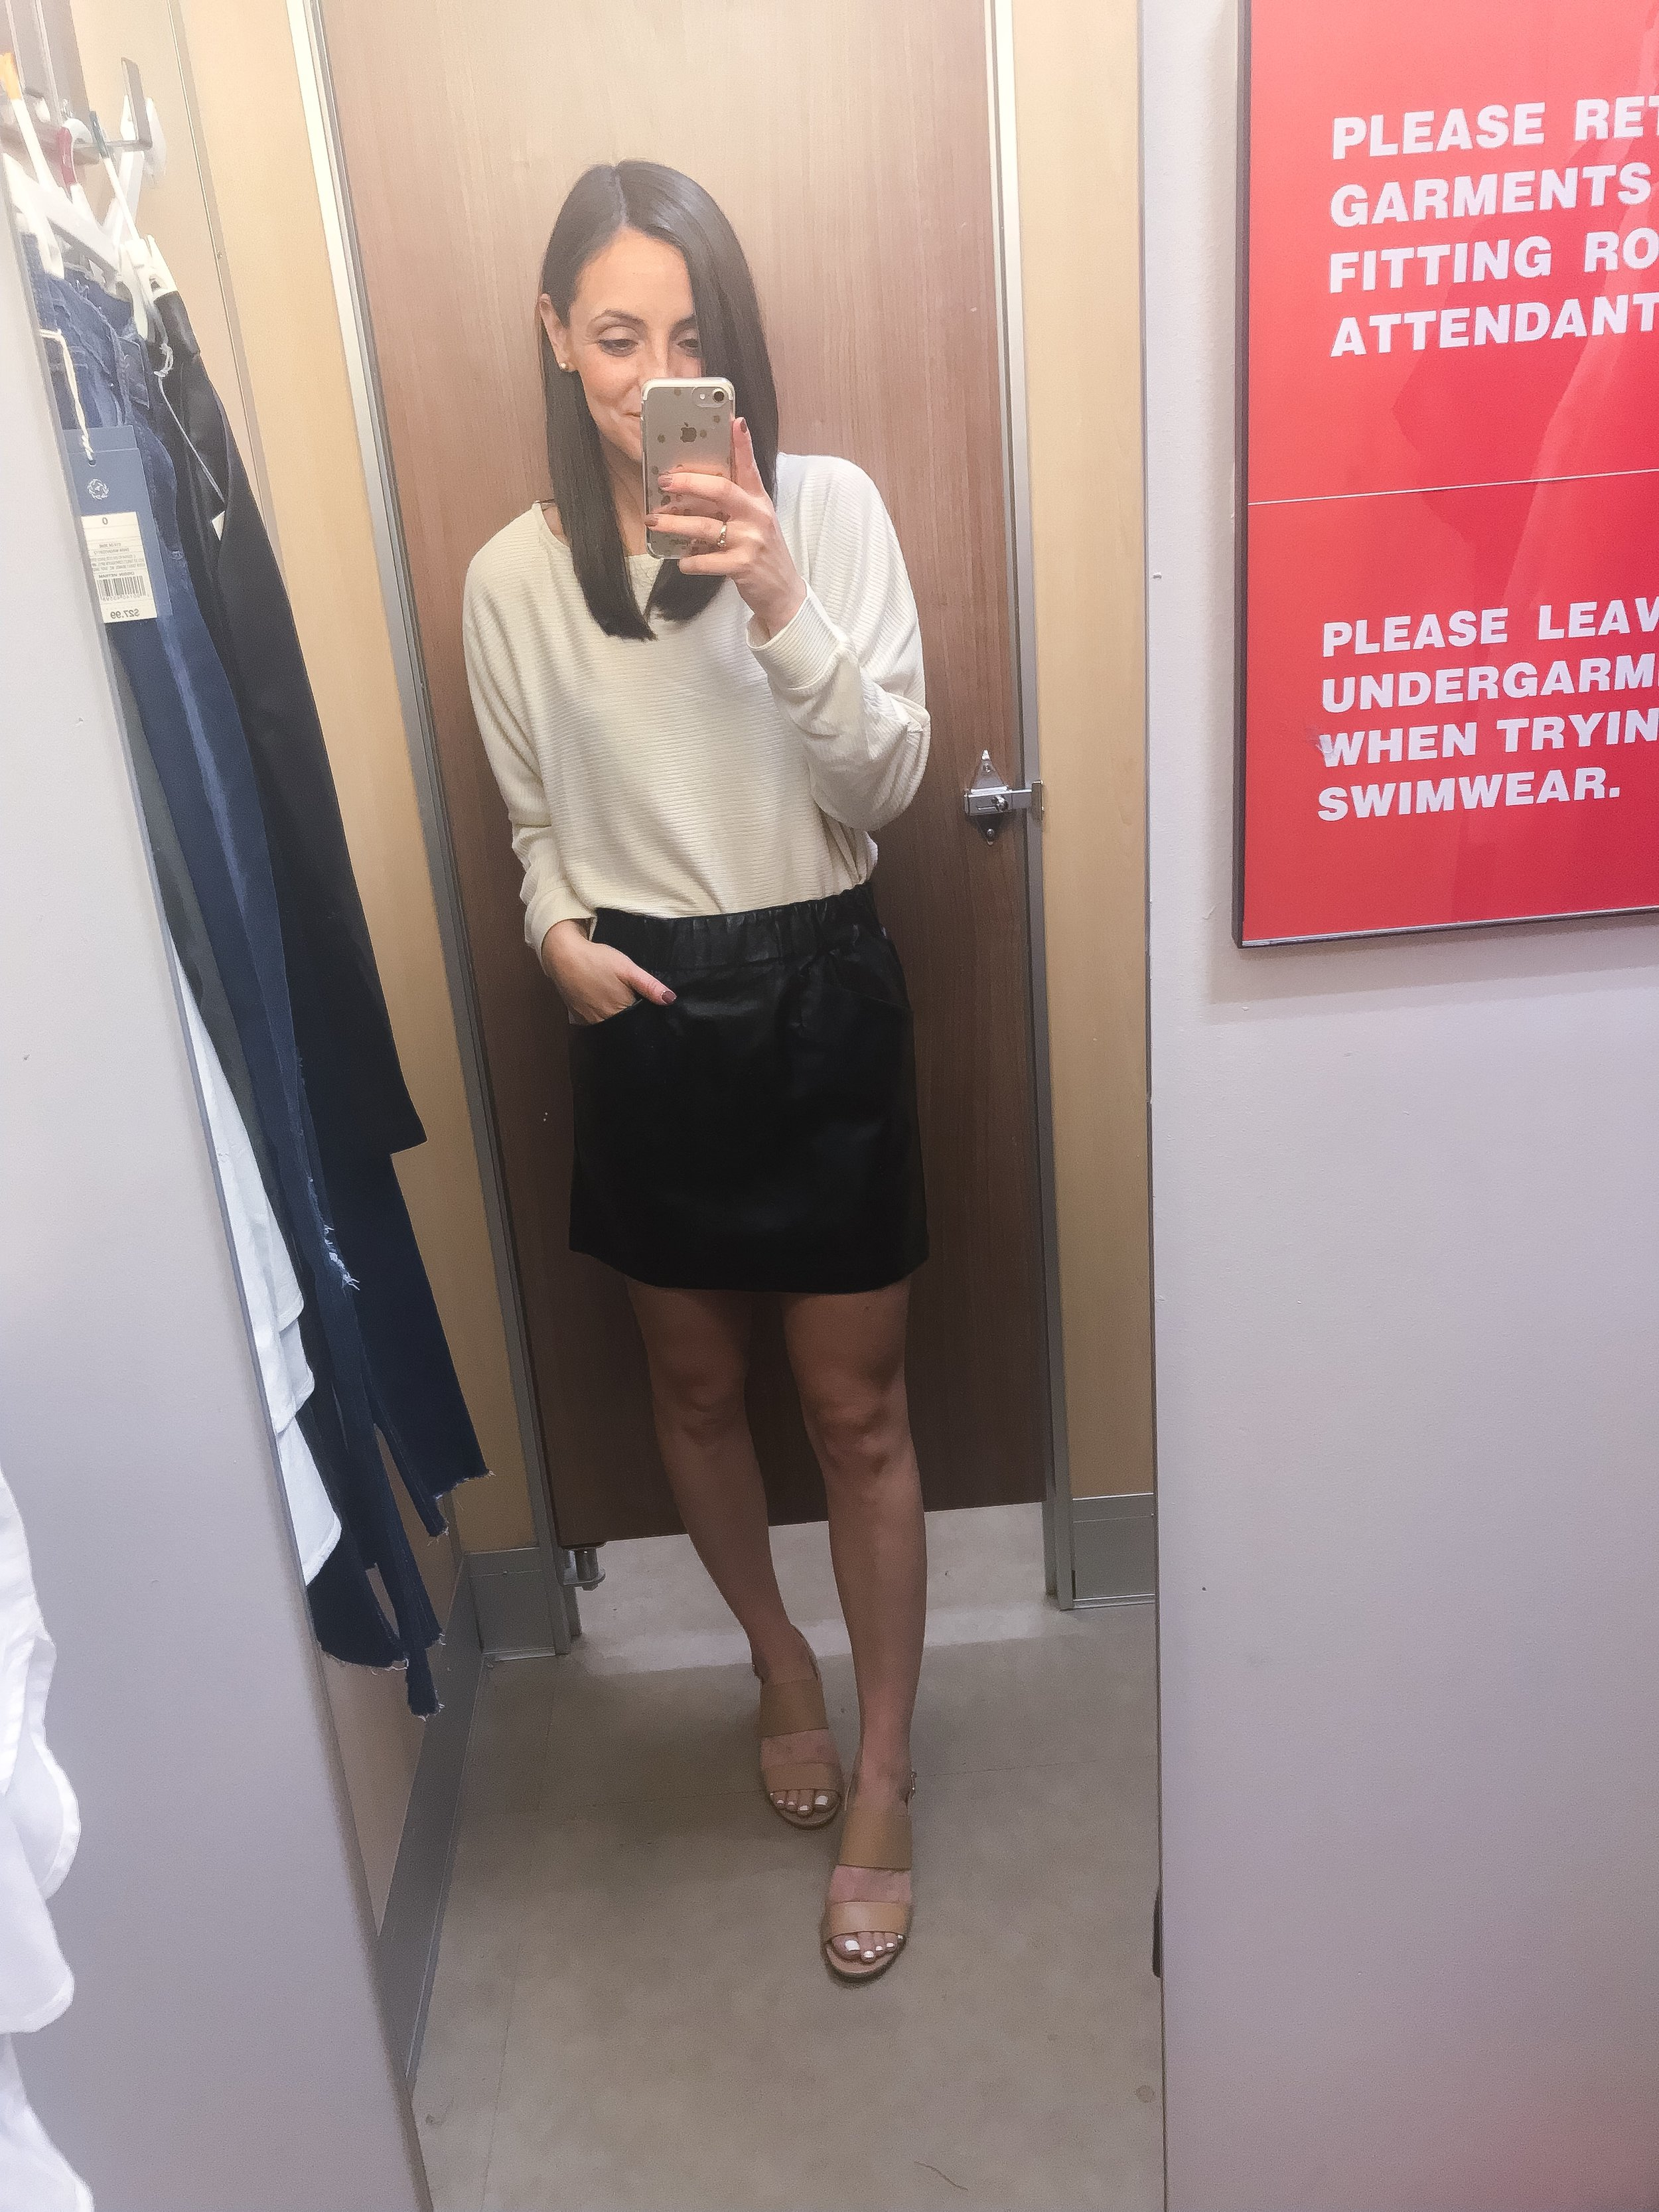 Target Haul: Fall Fashion Finds Vol. 2 -- The Life She Wanders